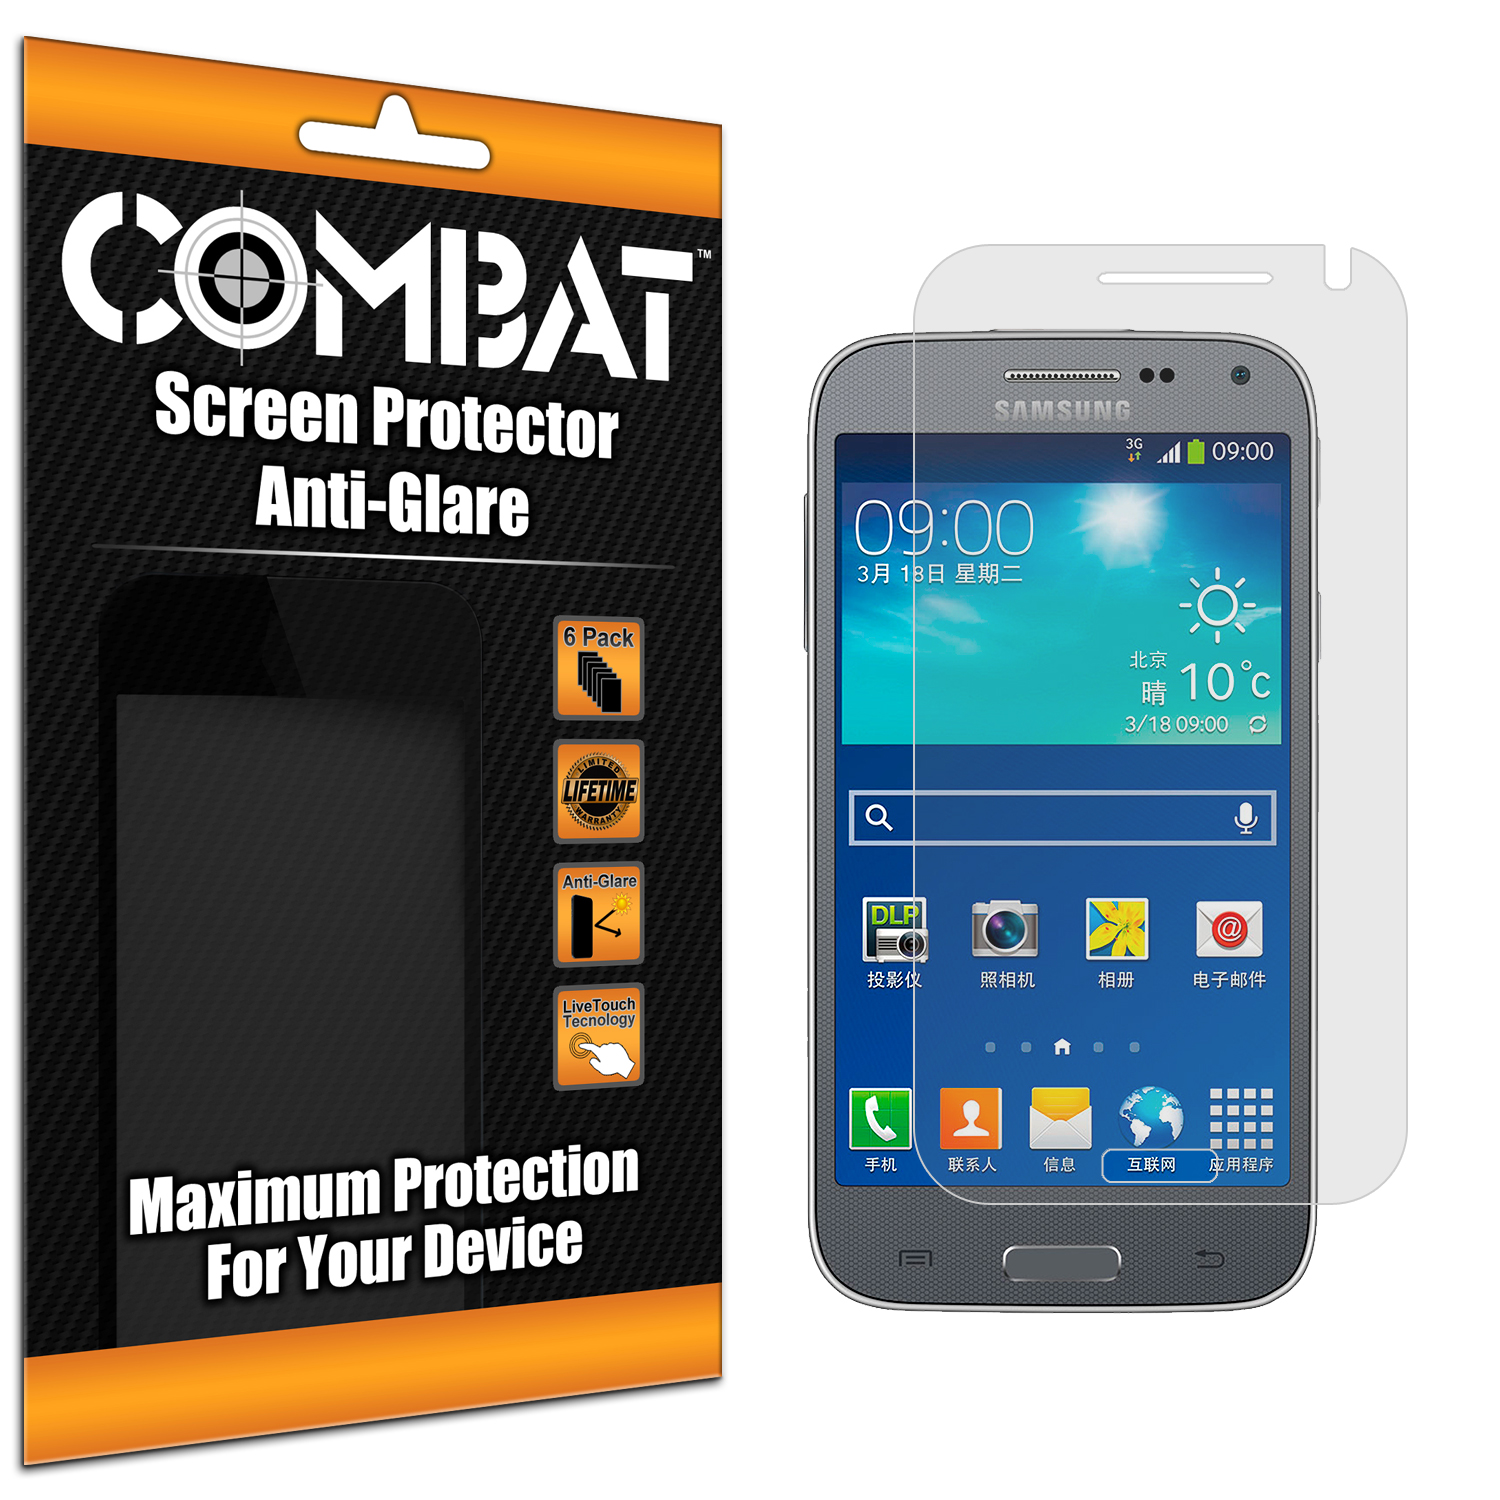 Samsung Galaxy Beam 2 Combat 6 Pack Anti-Glare Matte Screen Protector